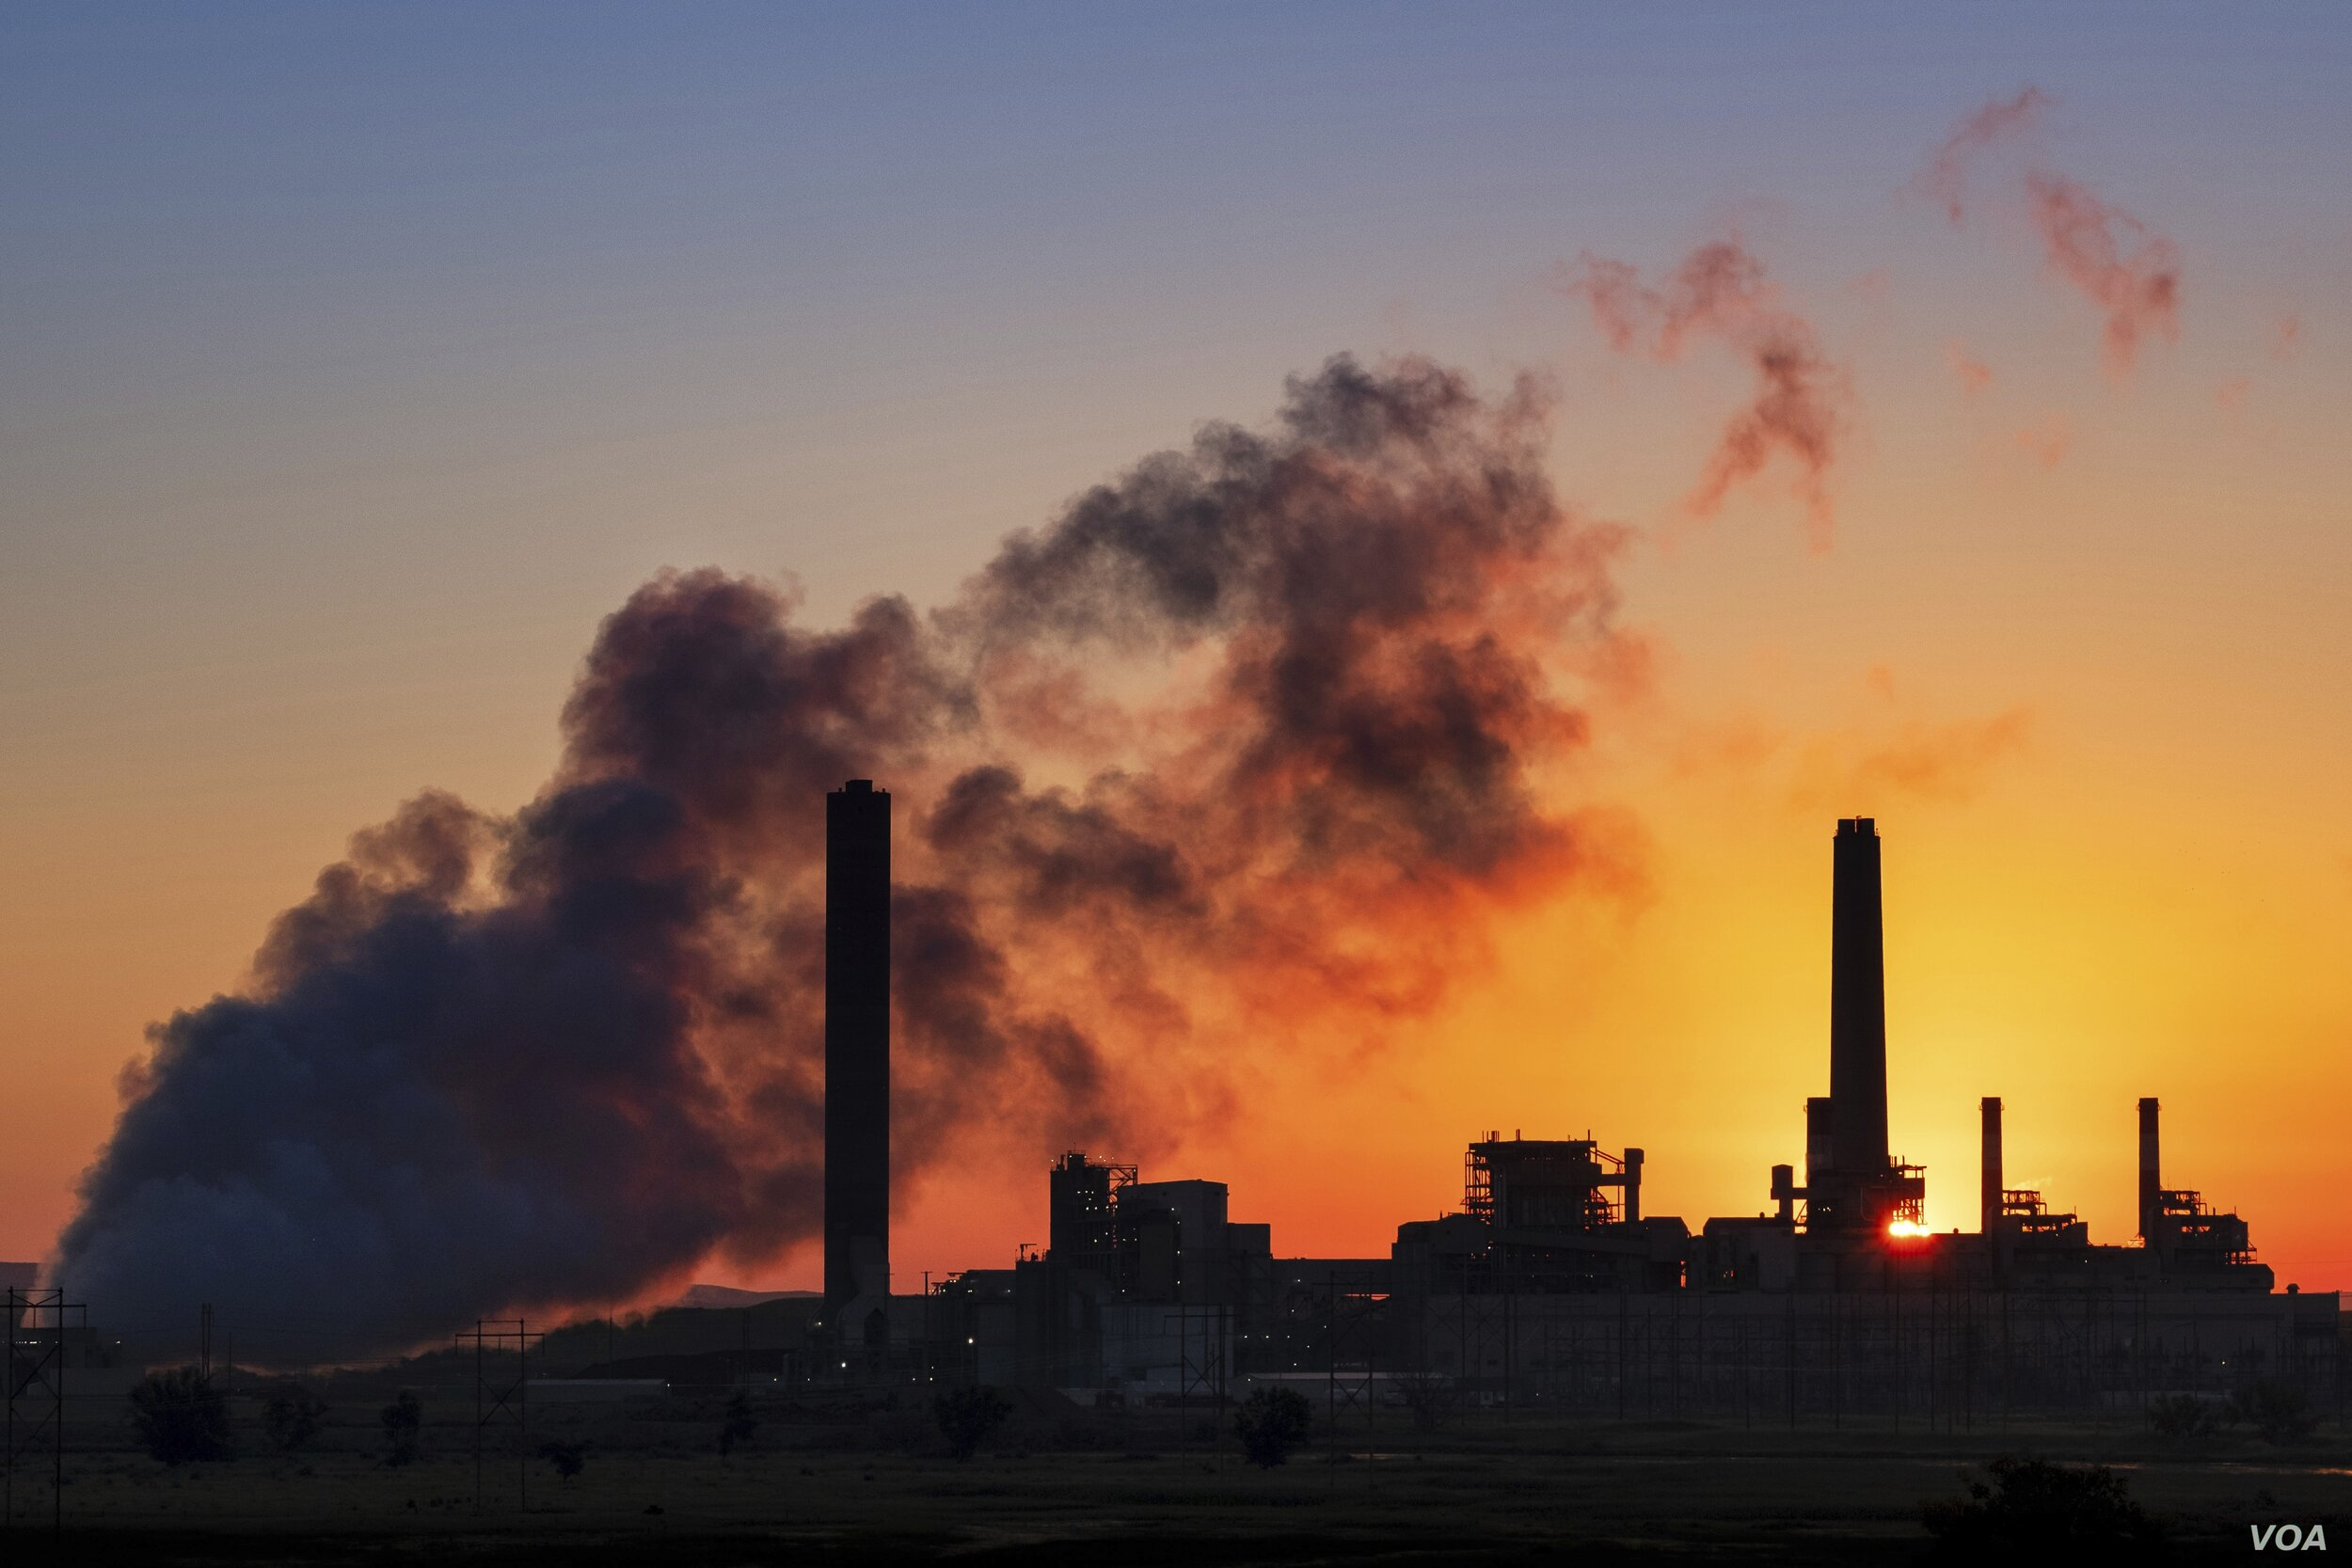 The Dave Johnson coal-fired power plant is silhouetted against the morning sun in Glenrock, Wyoming. (Voice of America)